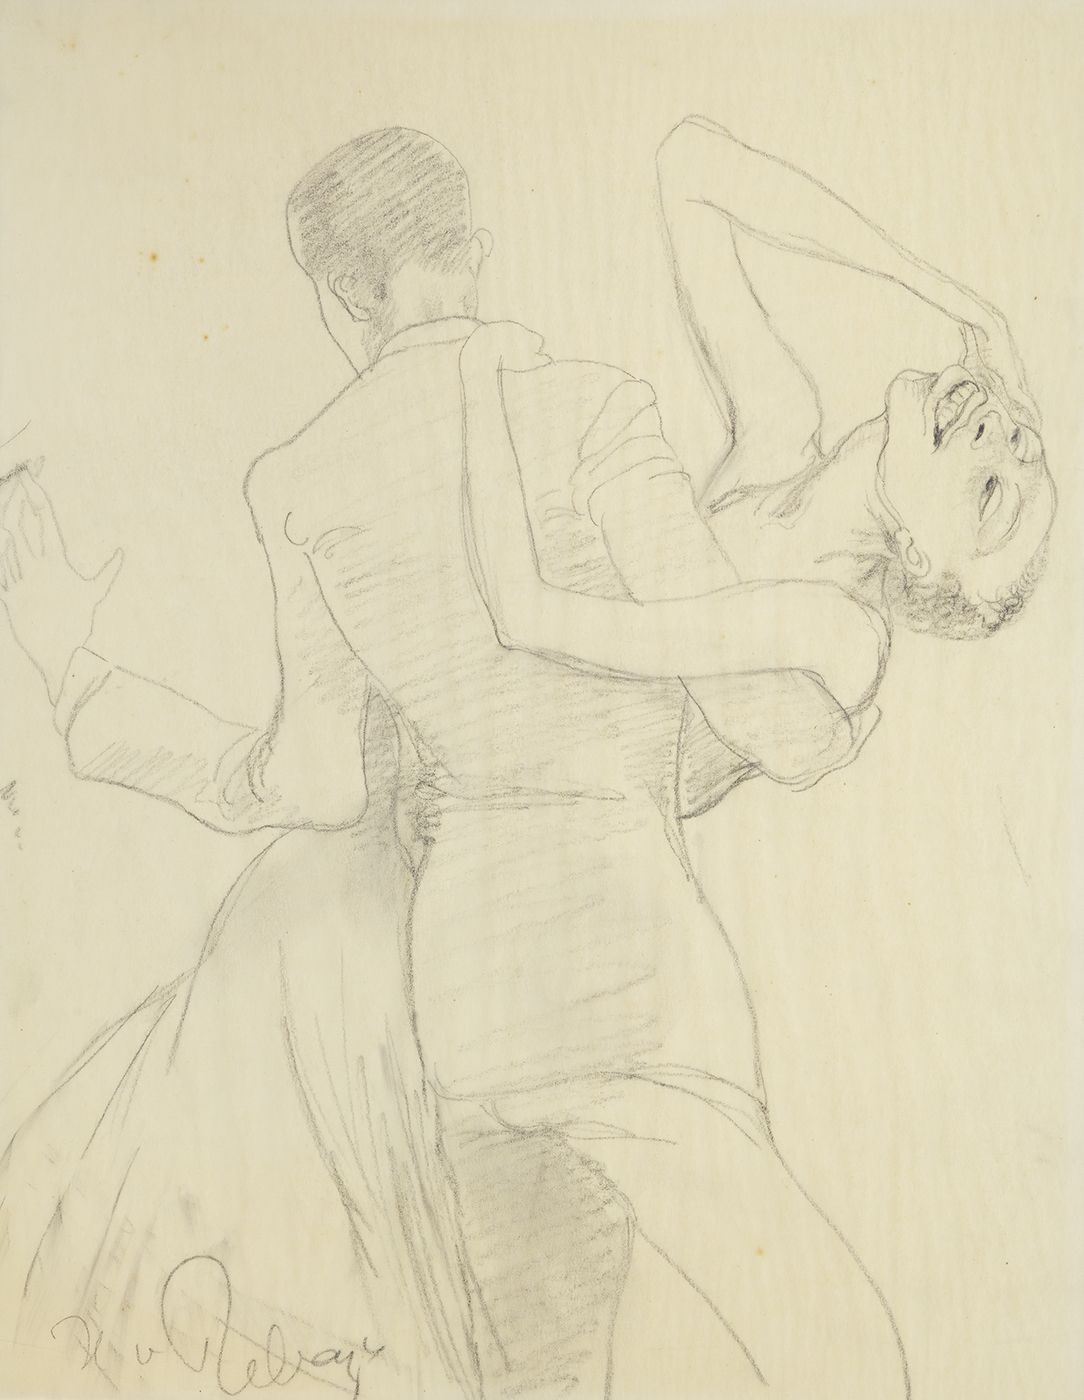 Hilla Rebay, Swingers, Graphite on paper, 11 x 9 inches, pencil sketch of man dancing with smiling woman. Hilla Rebay was an abstract artist and co-founder of the Guggenheim.